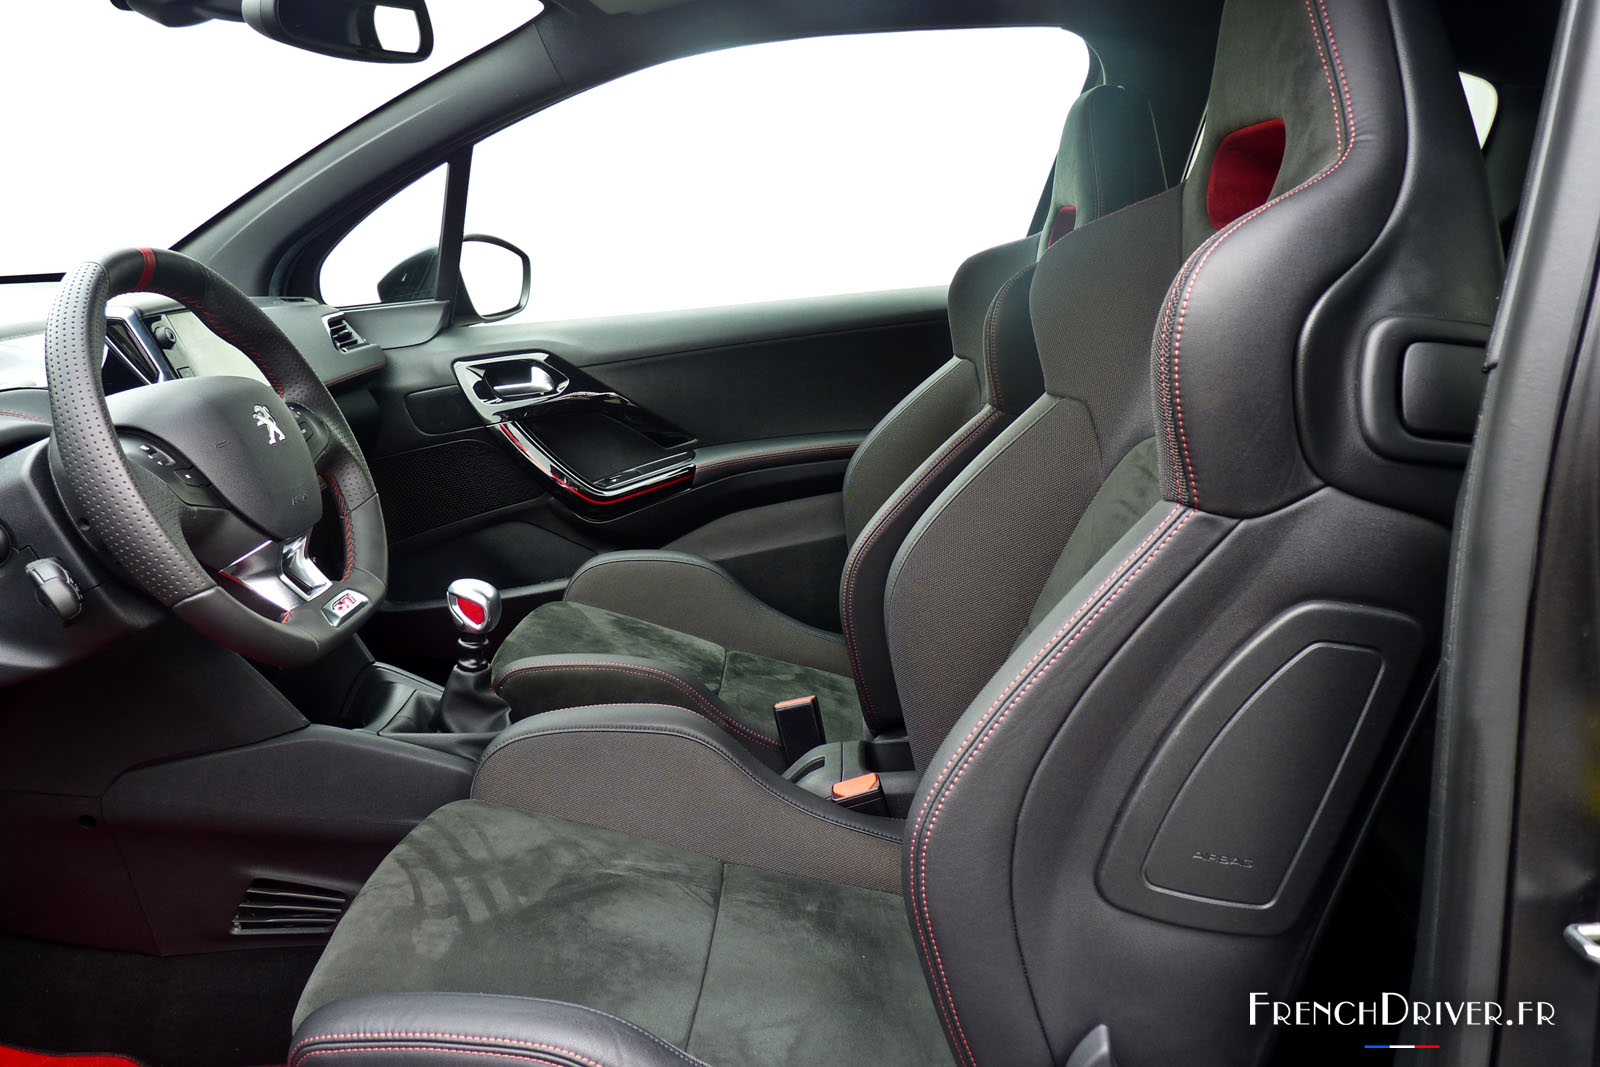 Essai de la peugeot 208 gti 30th l 39 exemple suivre for Interieur 208 gti